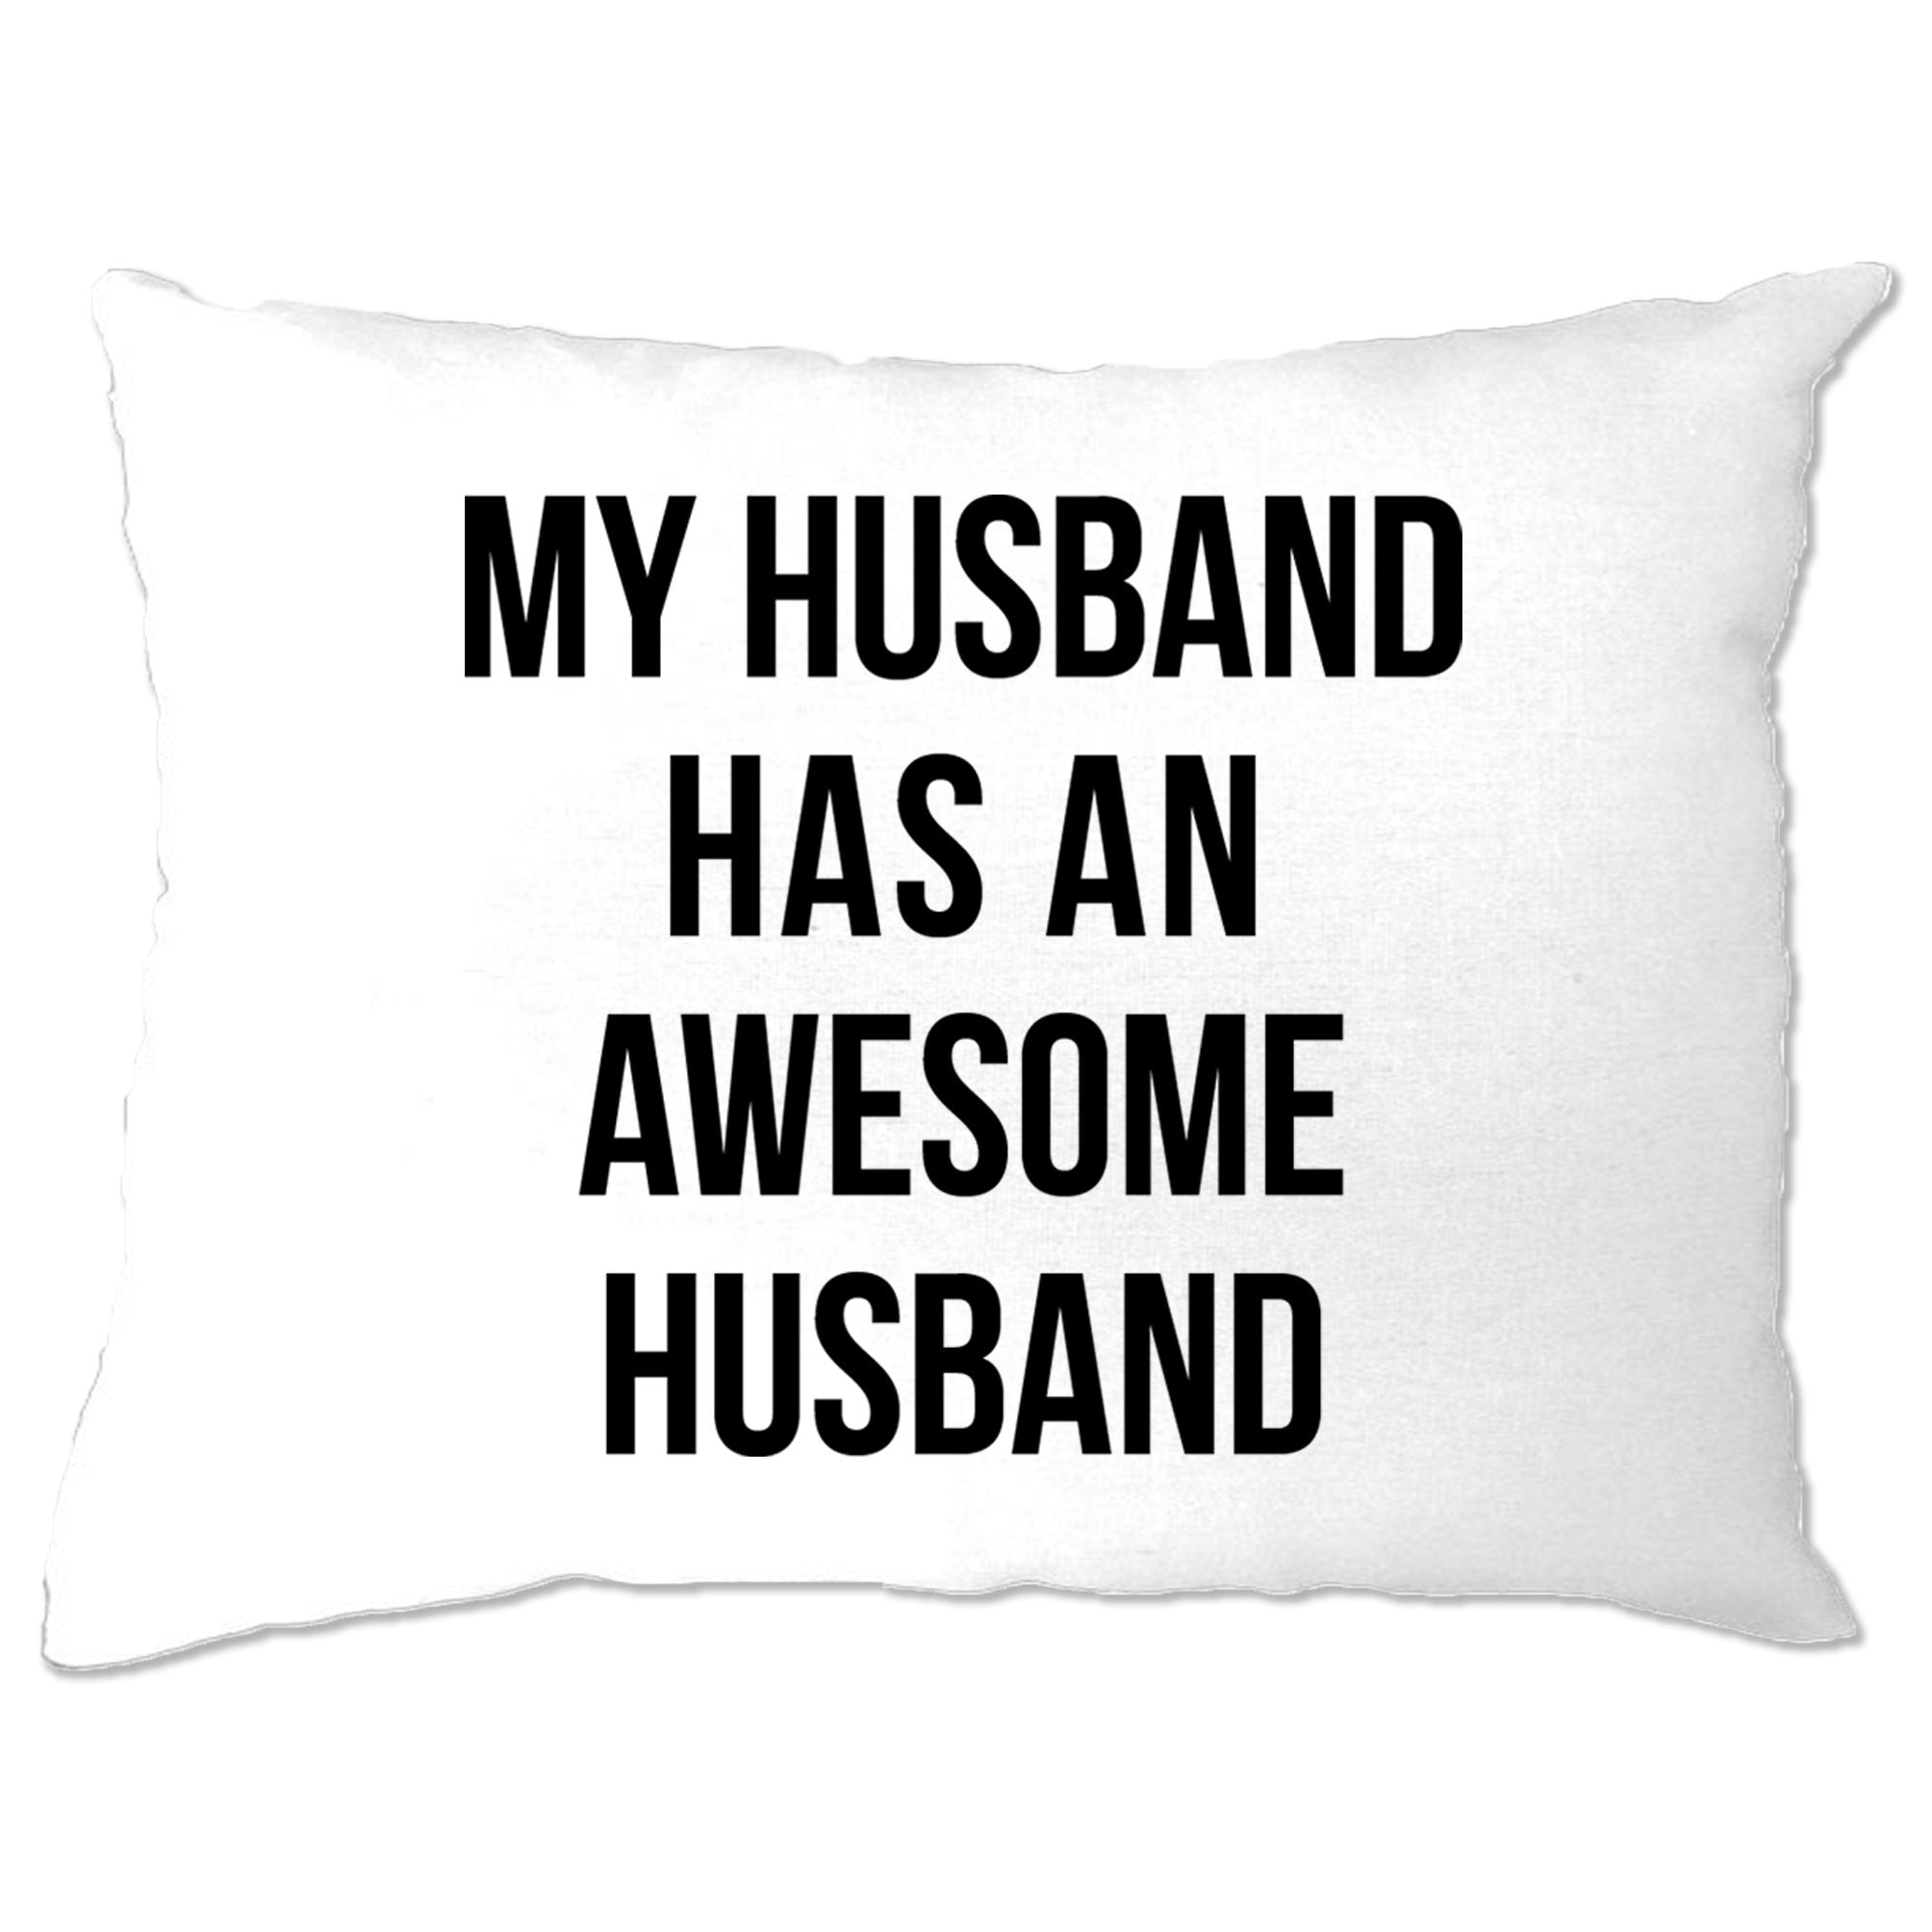 Joke Couples Pillow Case My Husband Has An Awesome Husband